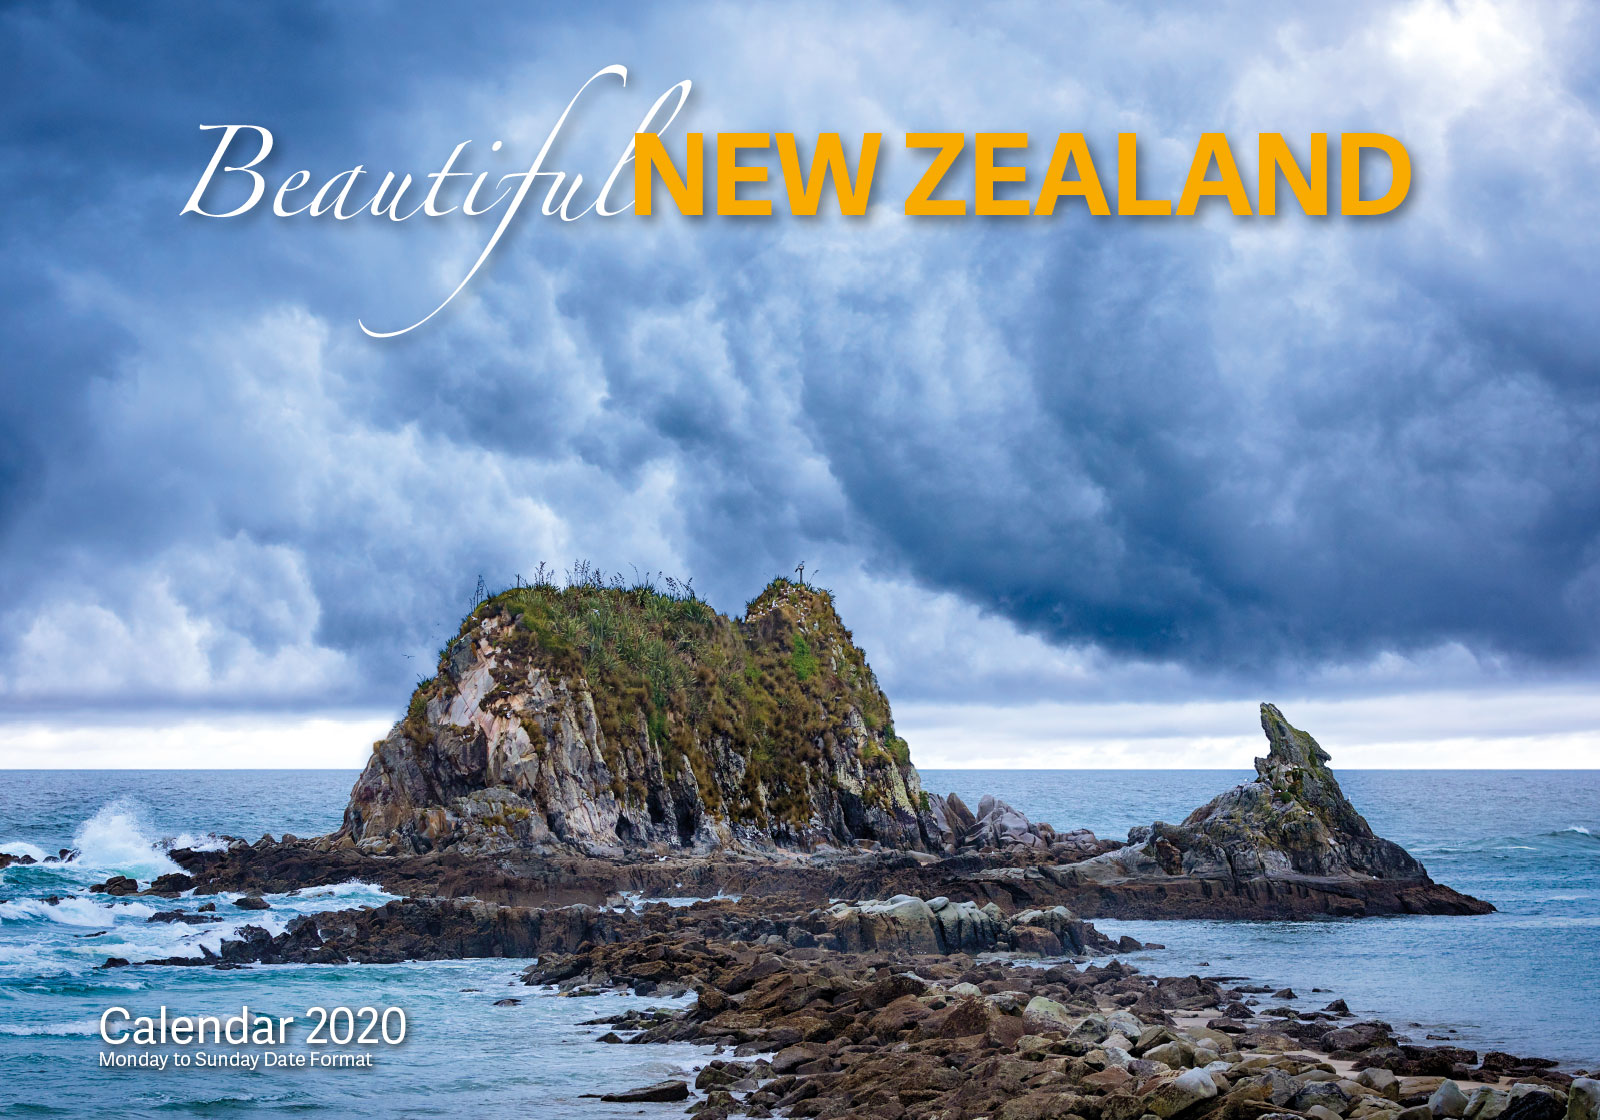 Beautiful New Zealand 2019